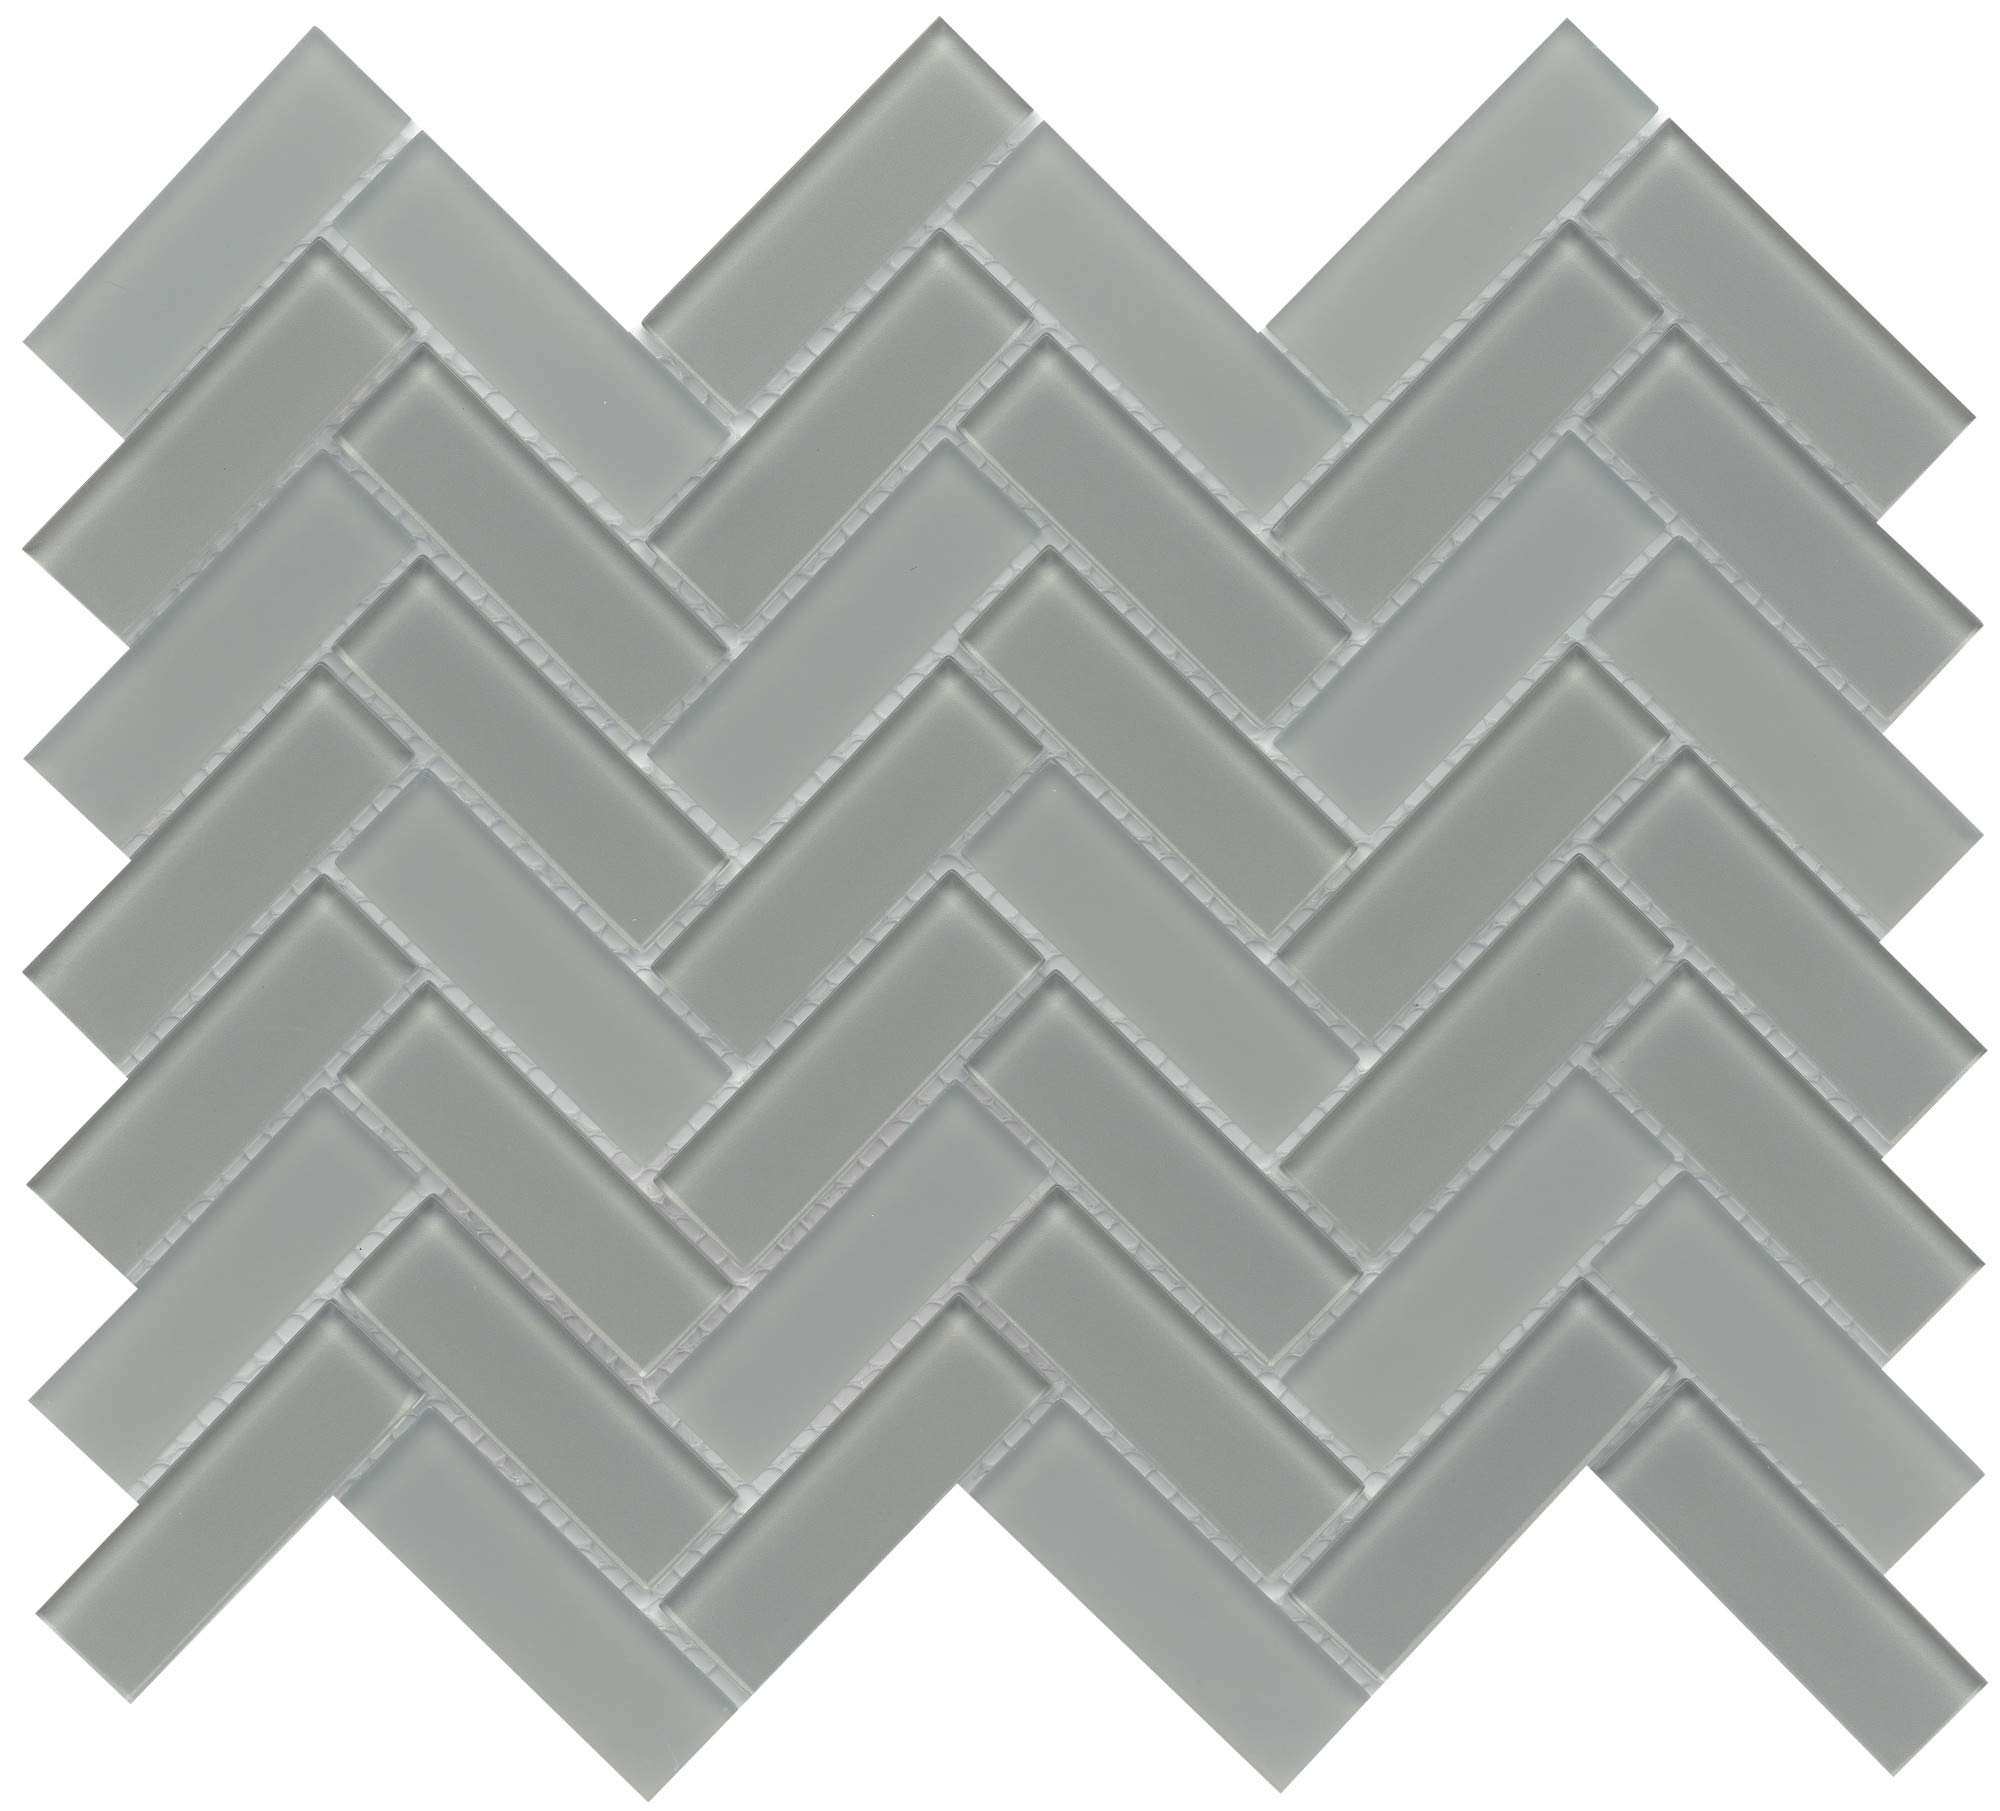 Emser Tile W80CHARGR1013MHB Charisma - 9-11/16'' x 13-1/16'' Herringbone Backsplash Mosaic Tile - Varied Glass Visual